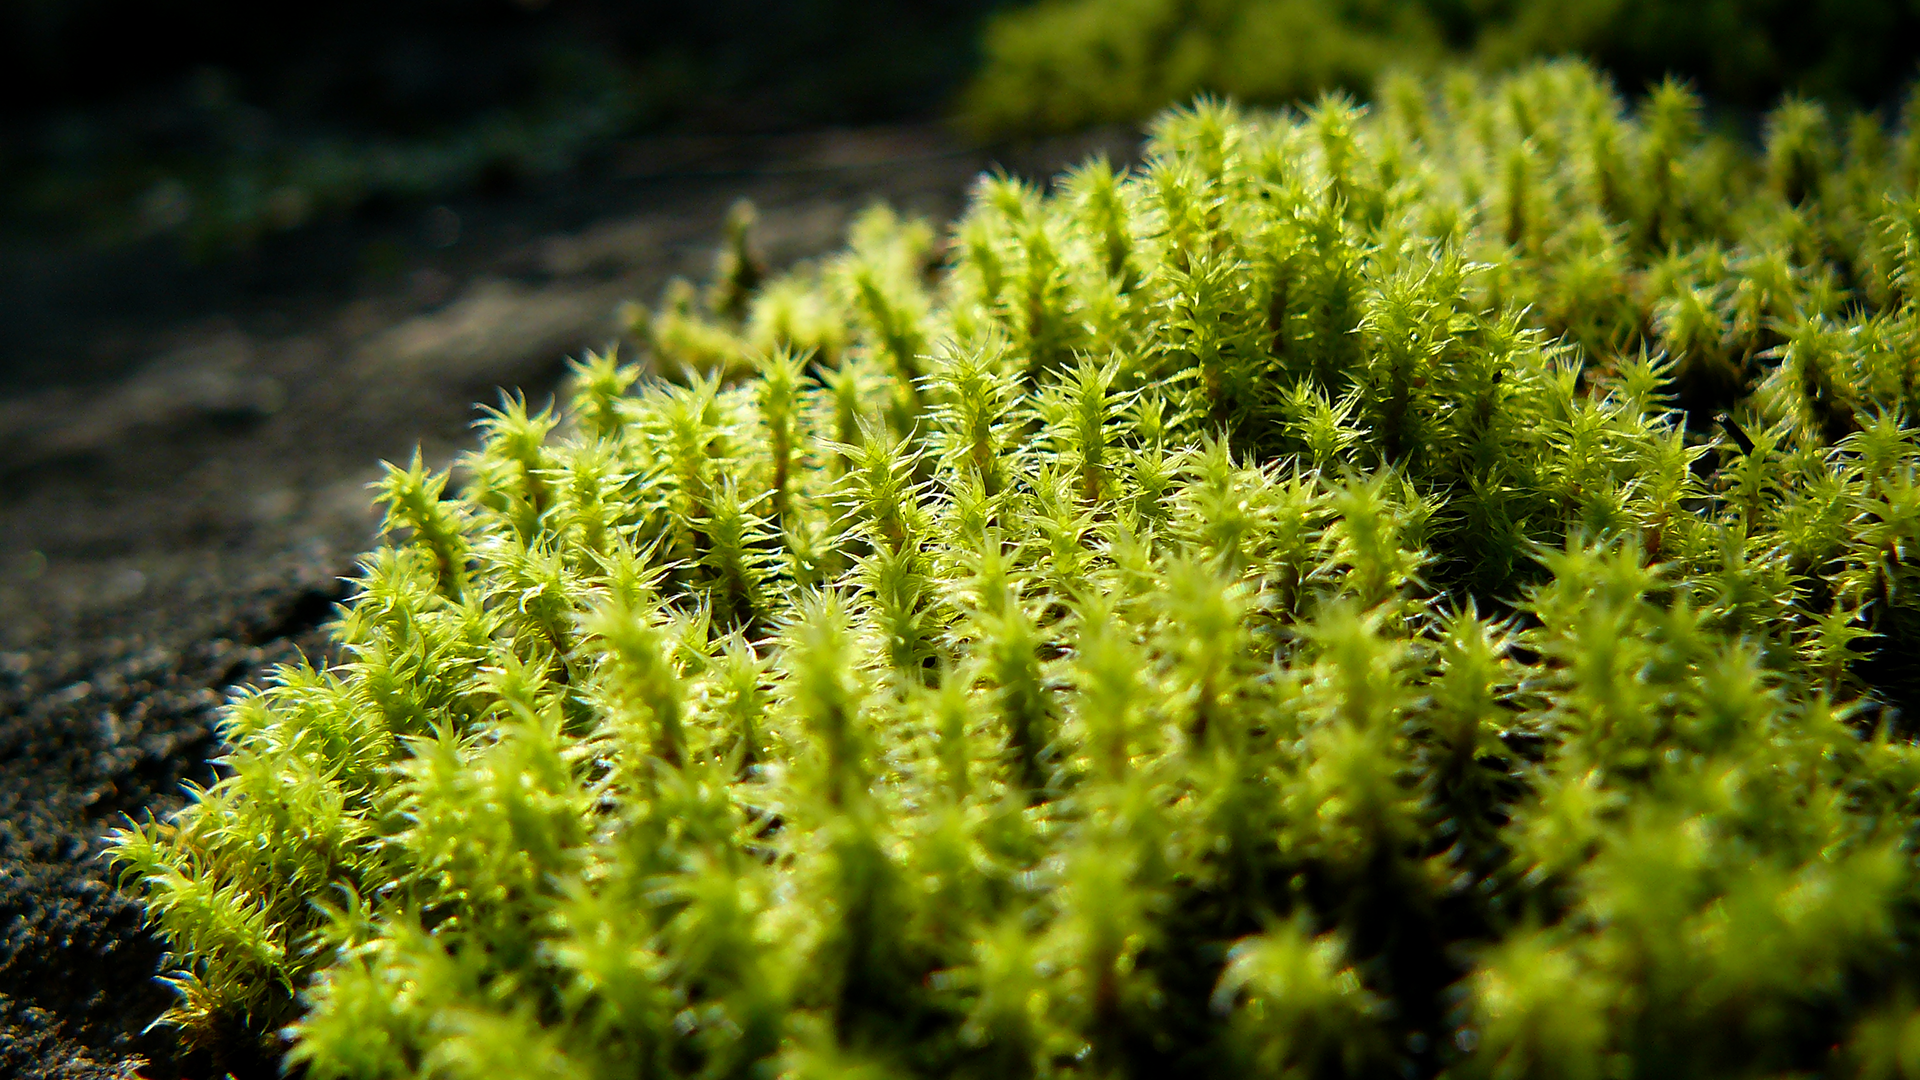 moss Computer Wallpapers, Desktop Backgrounds | 1920x1080 ...